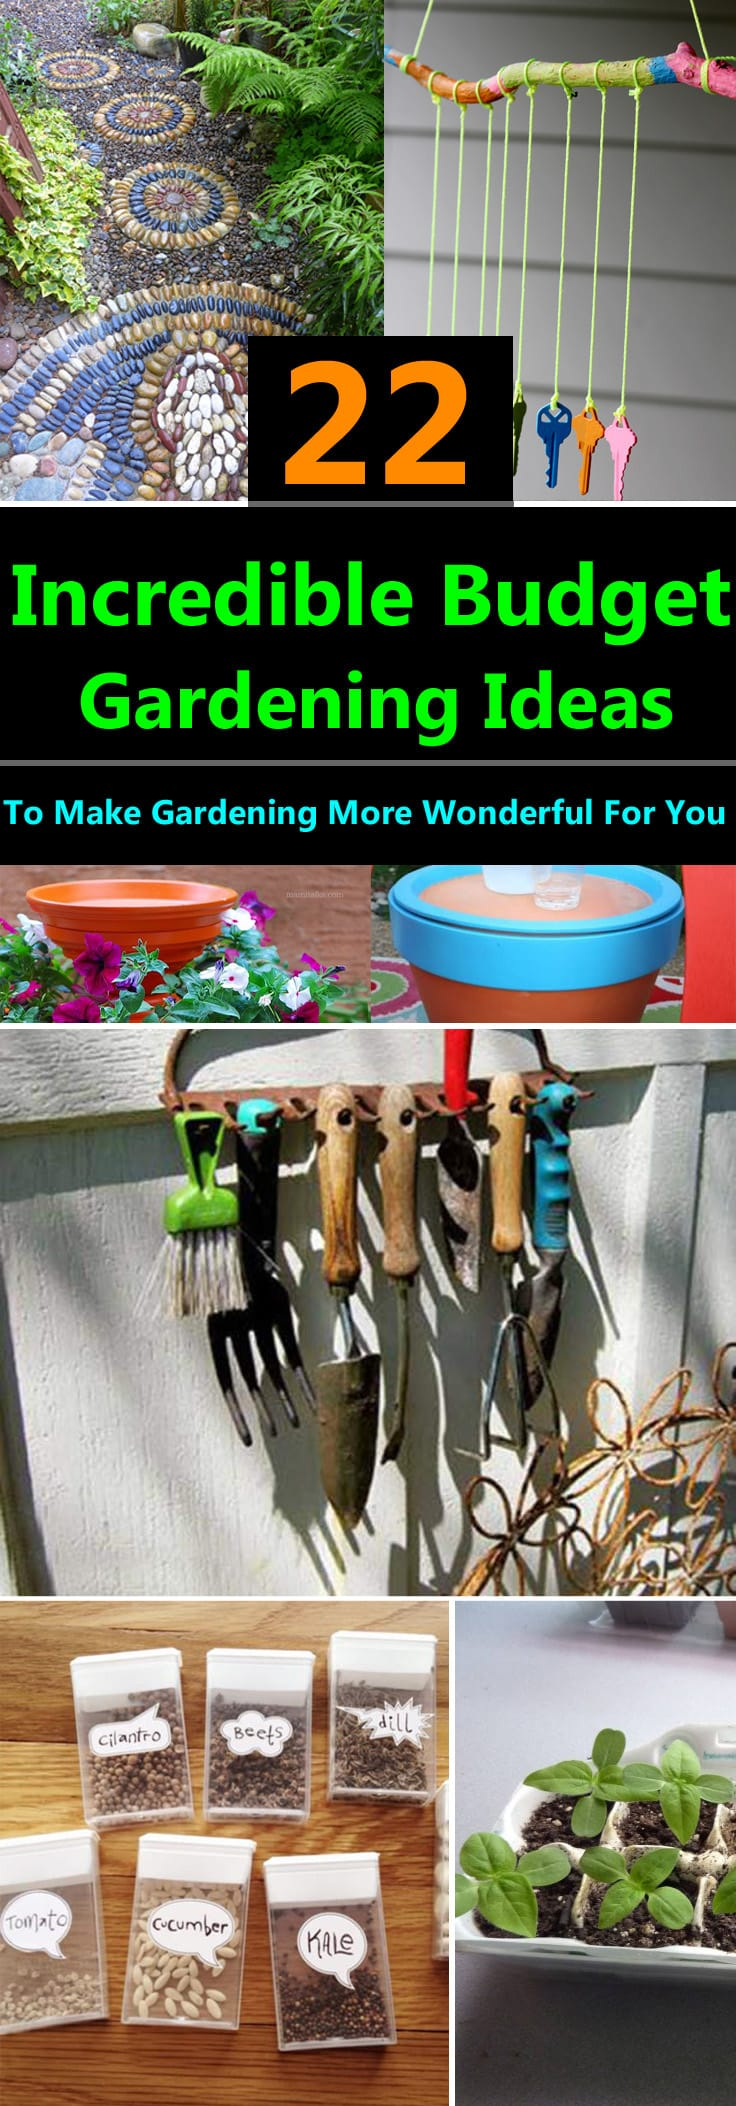 22 Incredible Budget Gardening Ideas | Garden Ideas On A ... on Garden Design Ideas On A Budget  id=67786